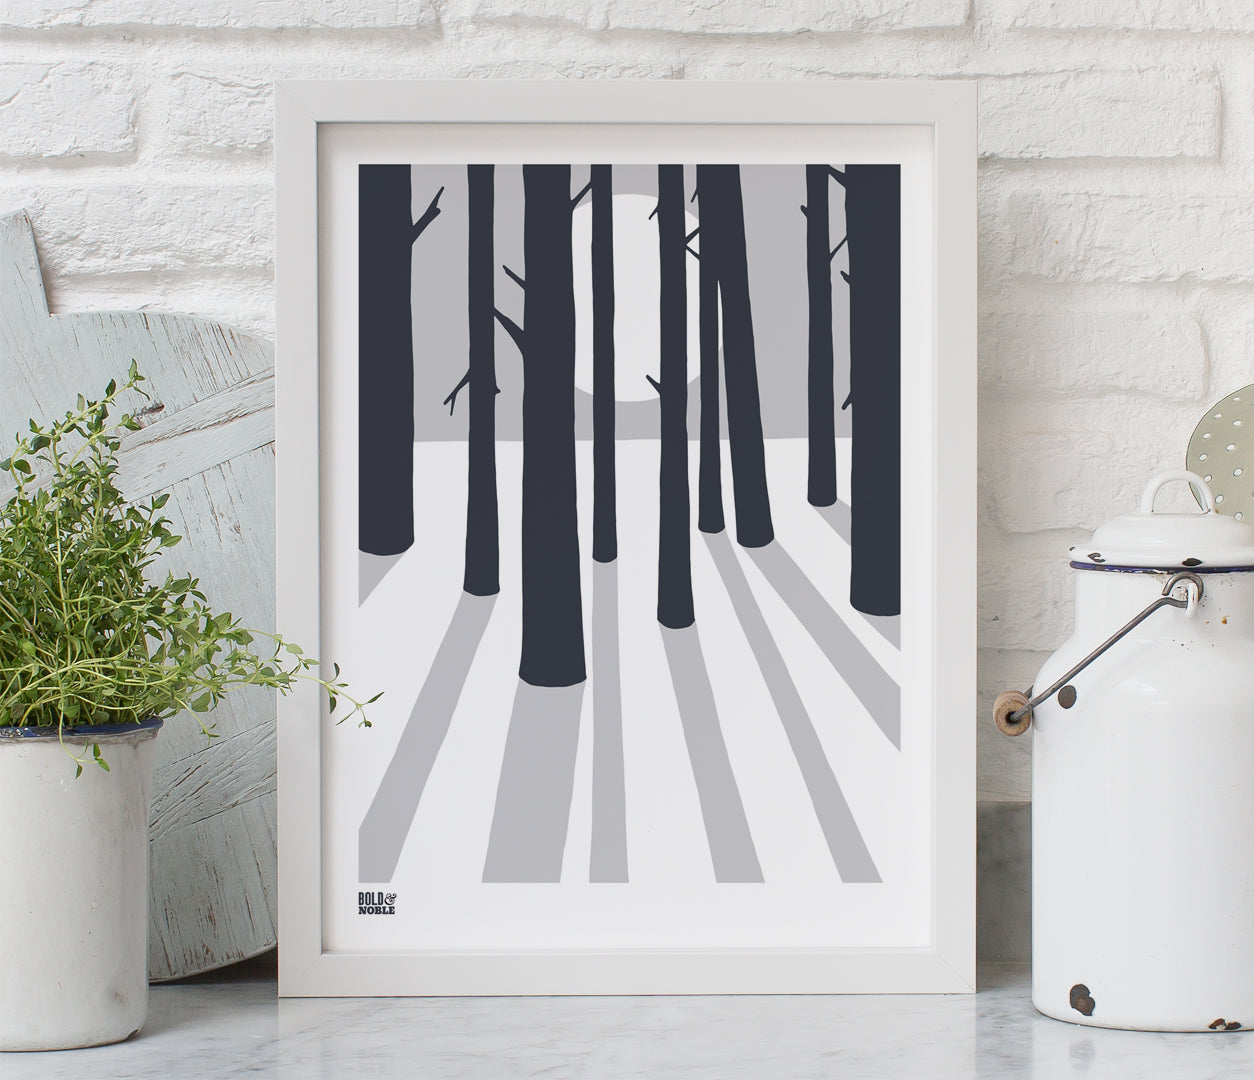 Pictures and Wall Art, Screen Printed In the Woods in Chalk Grey